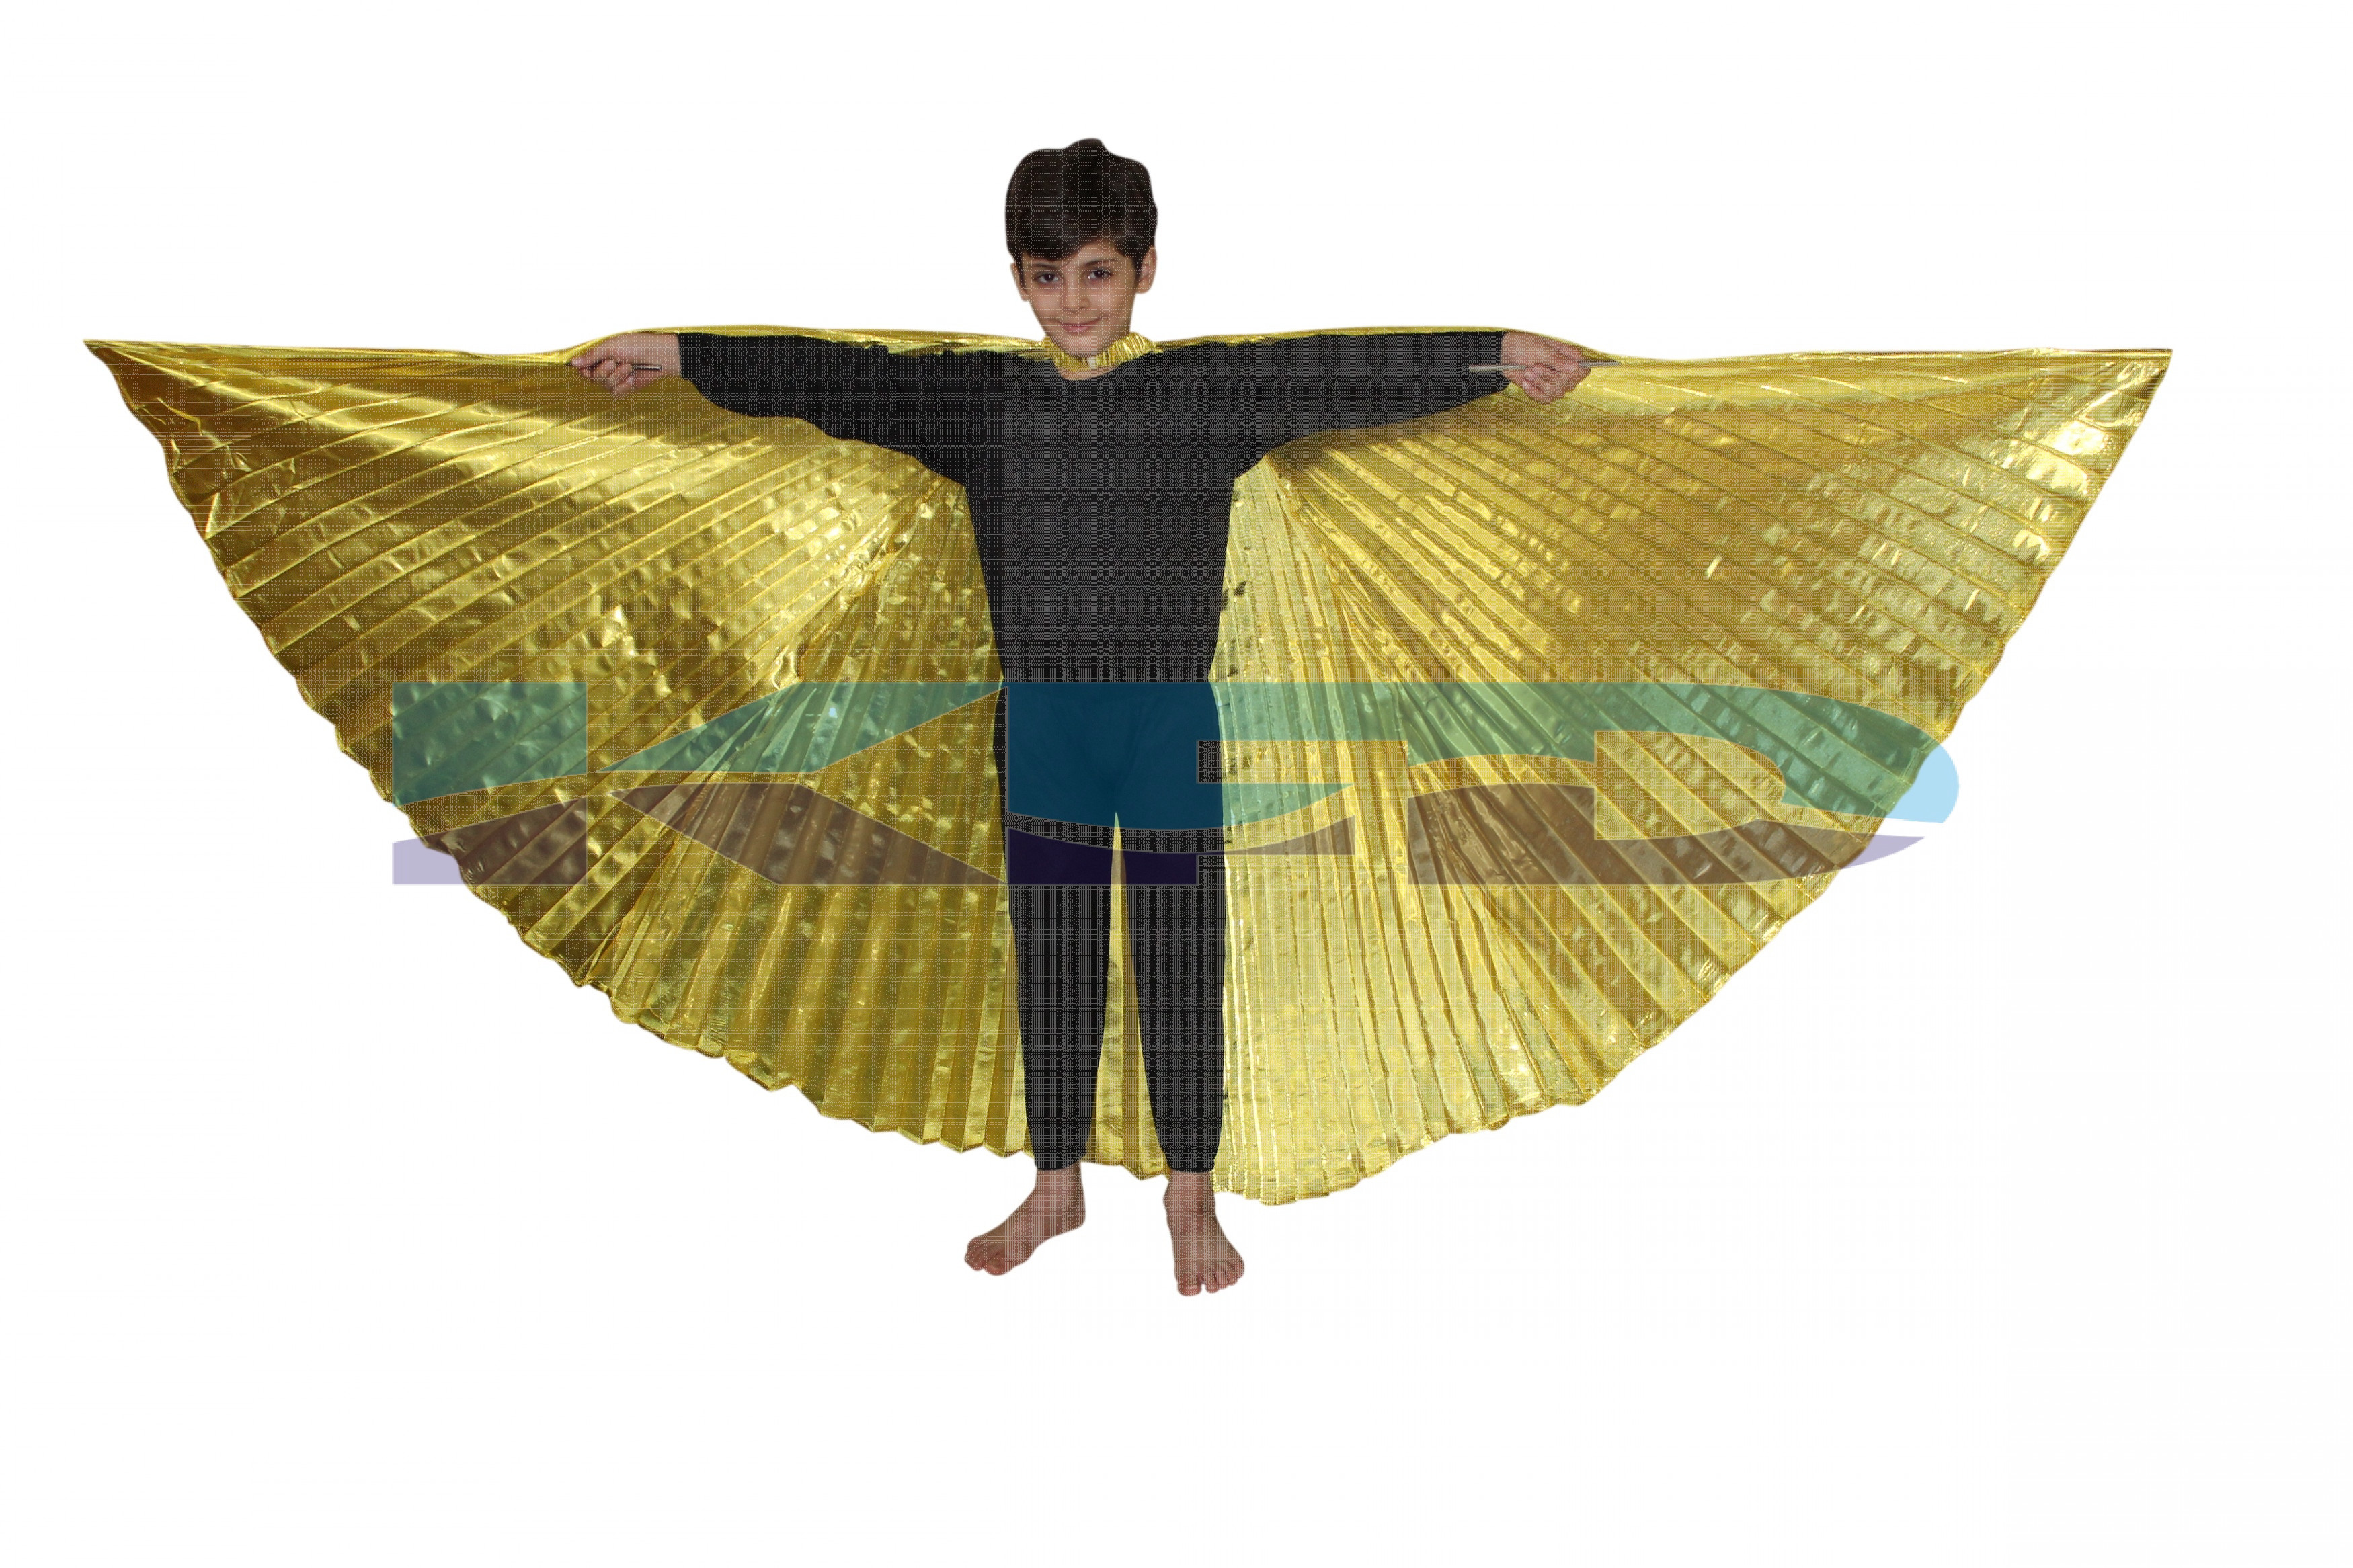 Belly Wings/Butterfly Wings/Cleopatra/Igypcian Dance Wings Full Size/CosPlay Costume For School Annual function/Theme Party/Competition/Stage Shows/Birthday Party Dress